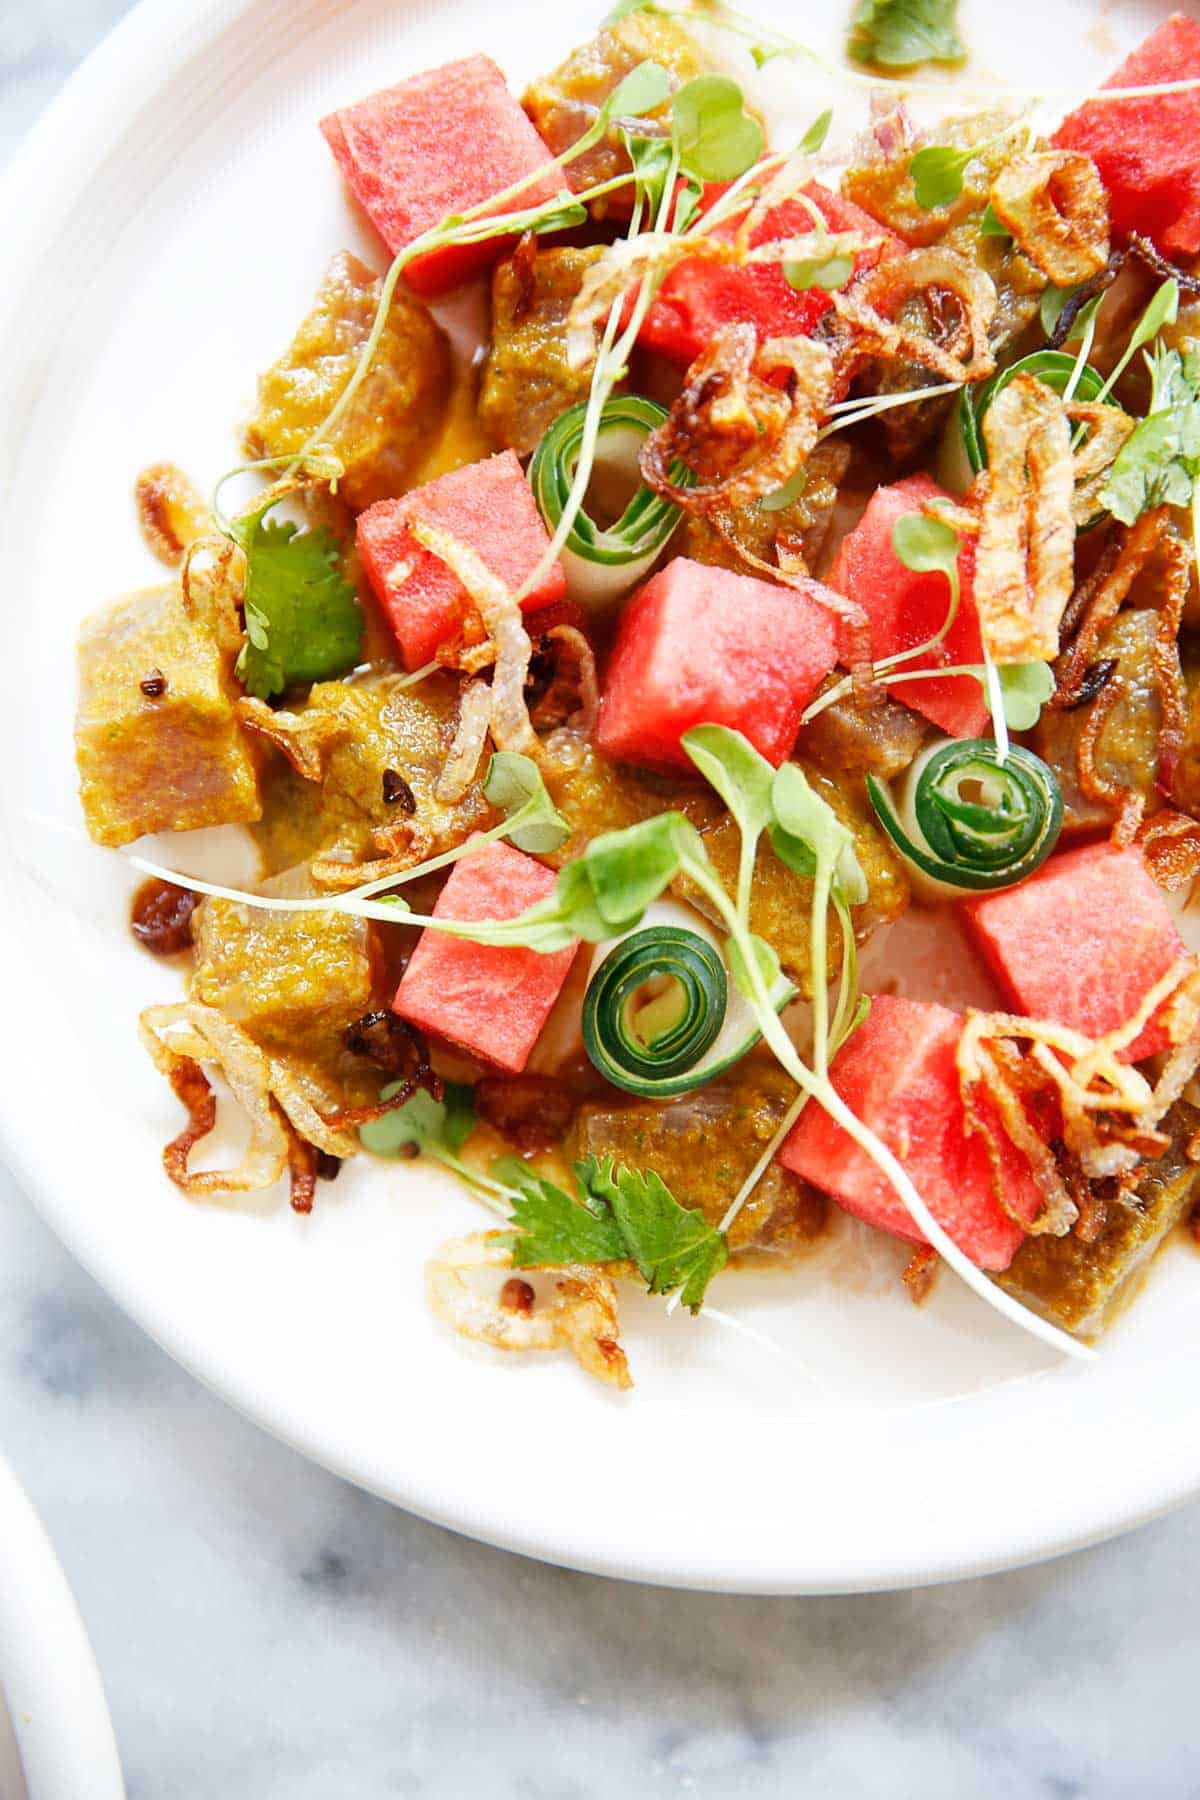 Watermelon Ahi Tuna Salad (gluten-free, soy-free, low carb) - Lexi's Clean Kitchen